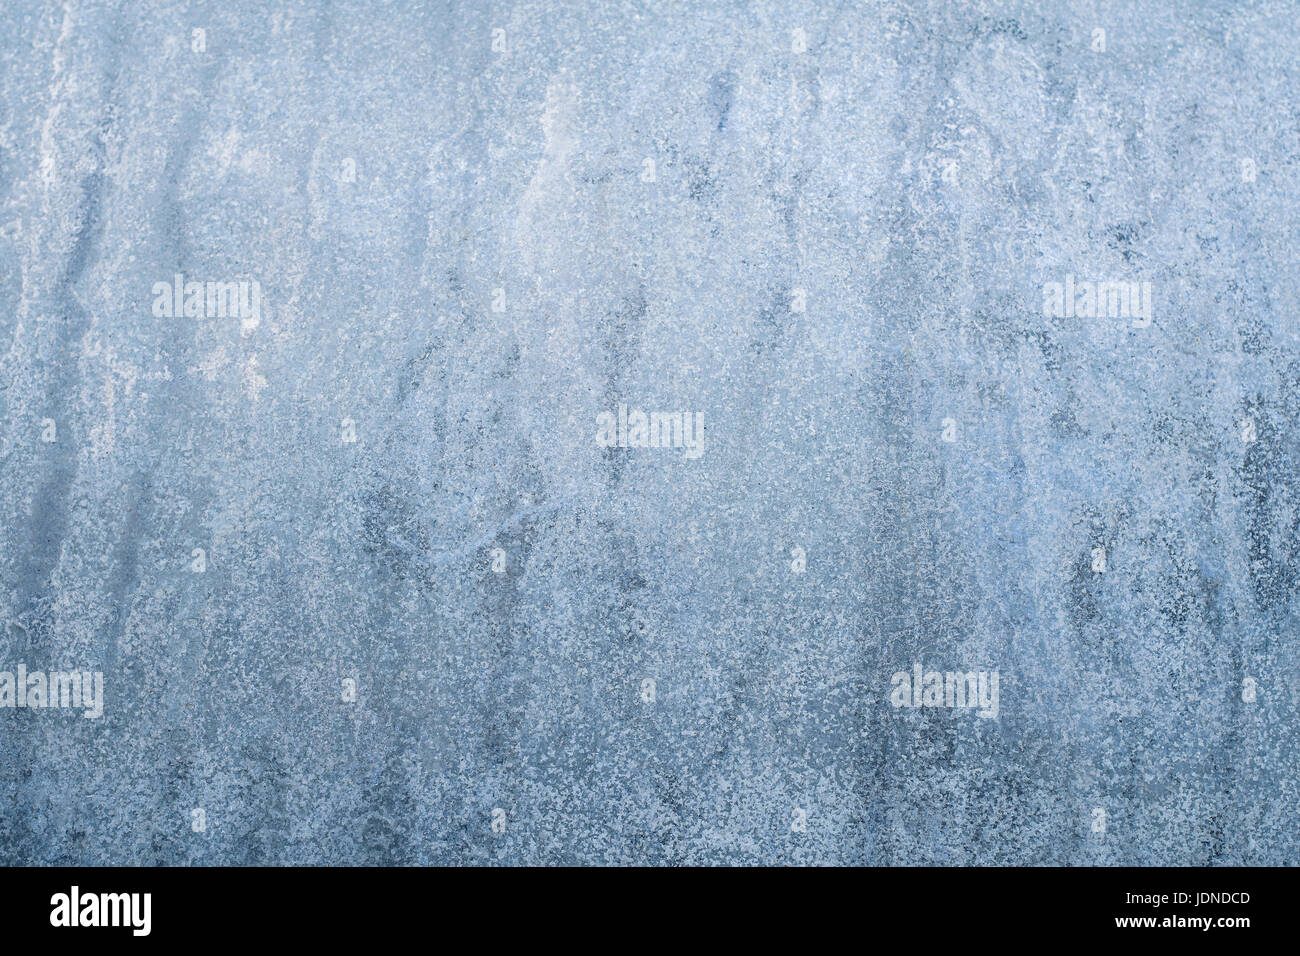 Vintage texture of old galvanized metal - Stock Image